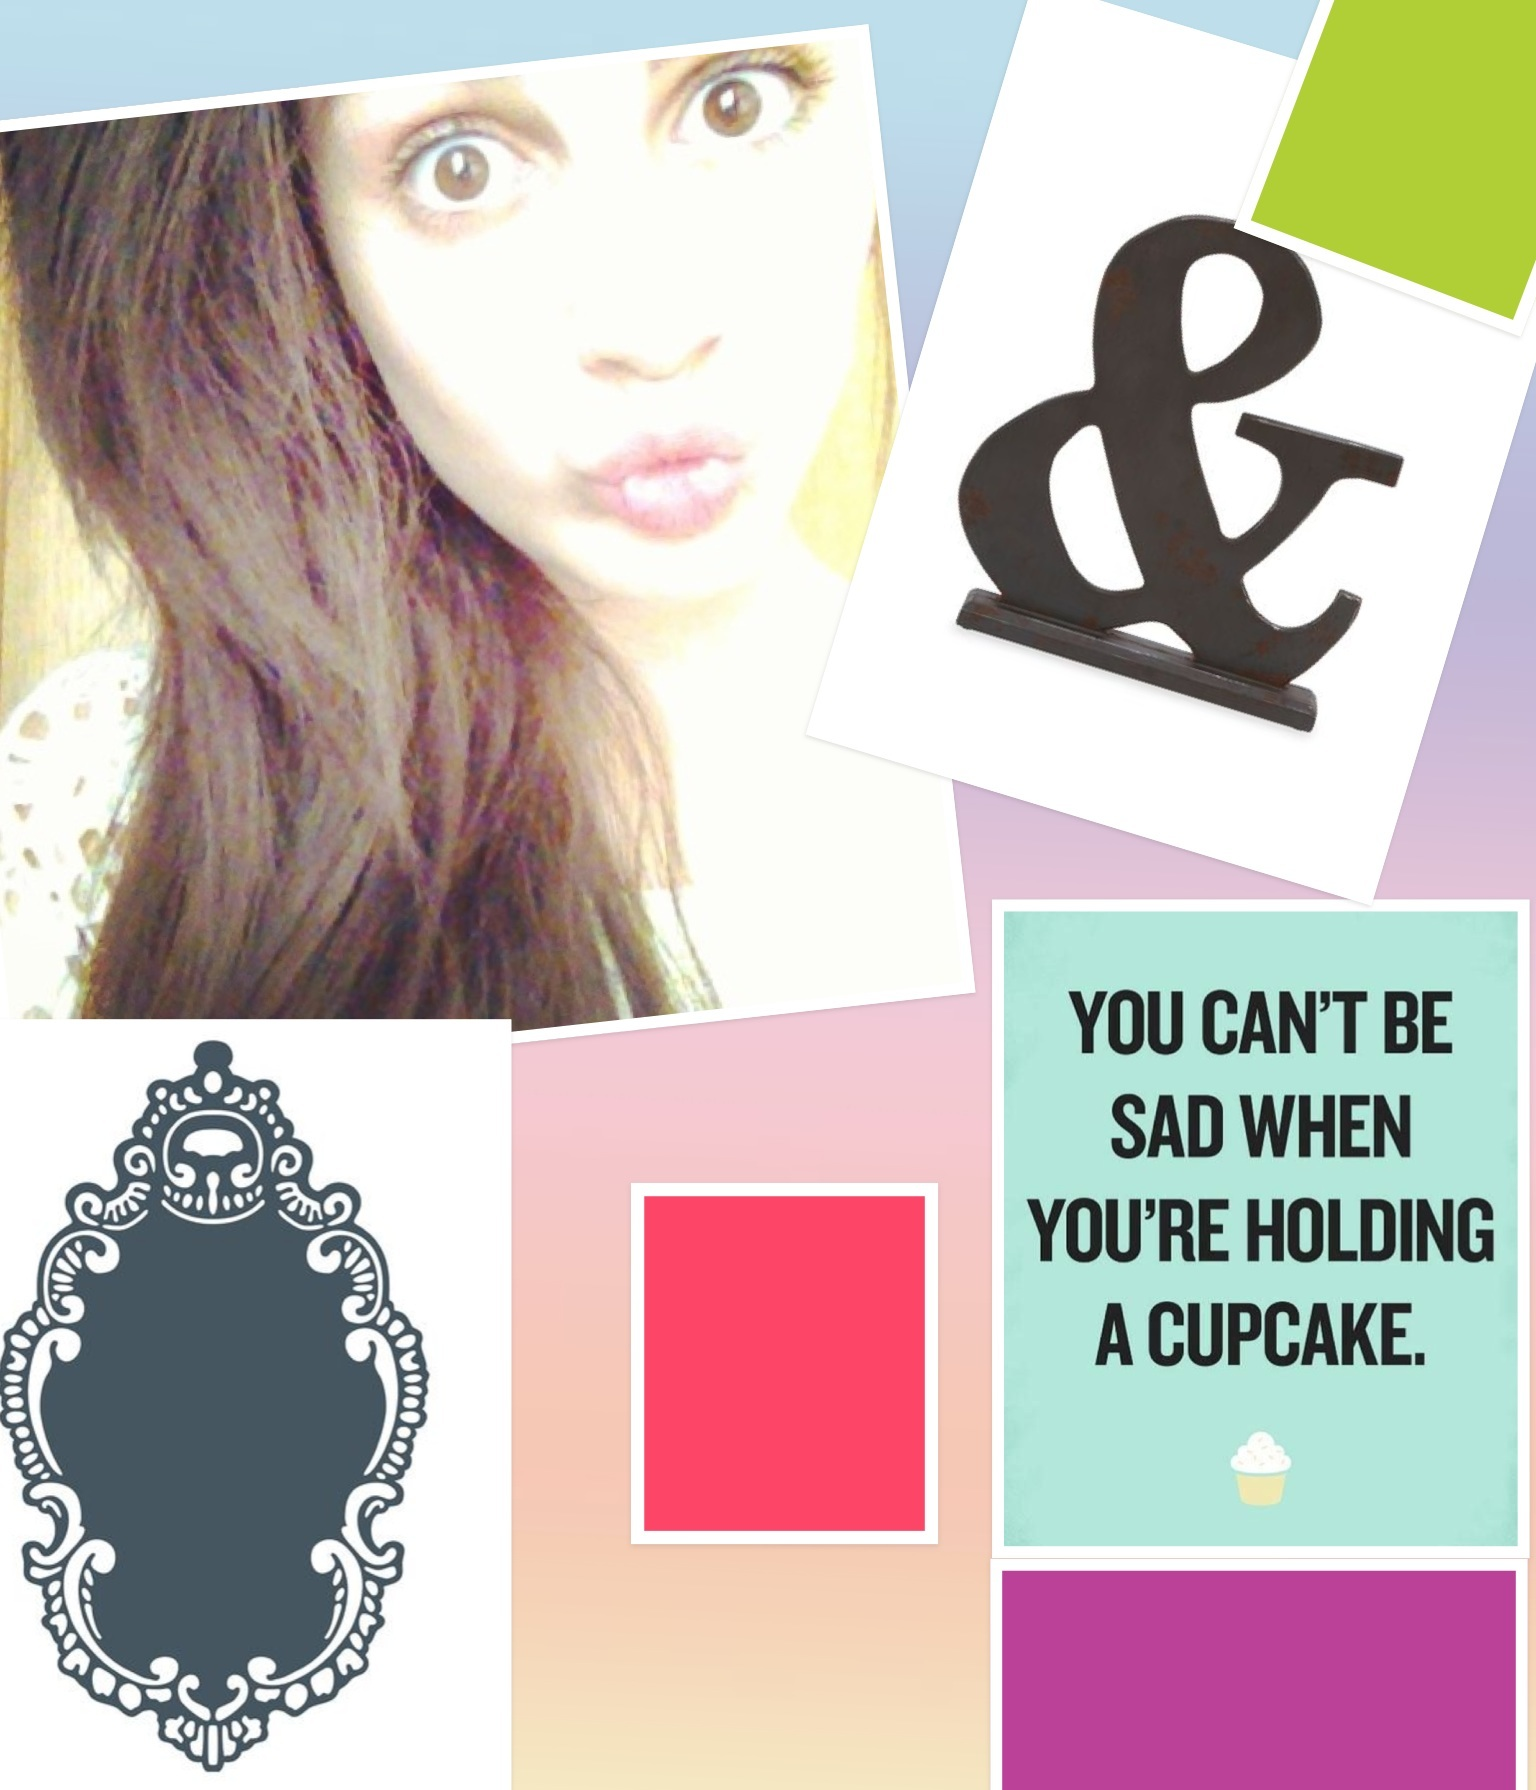 <3 you can't be sad when you're holding a cupcake